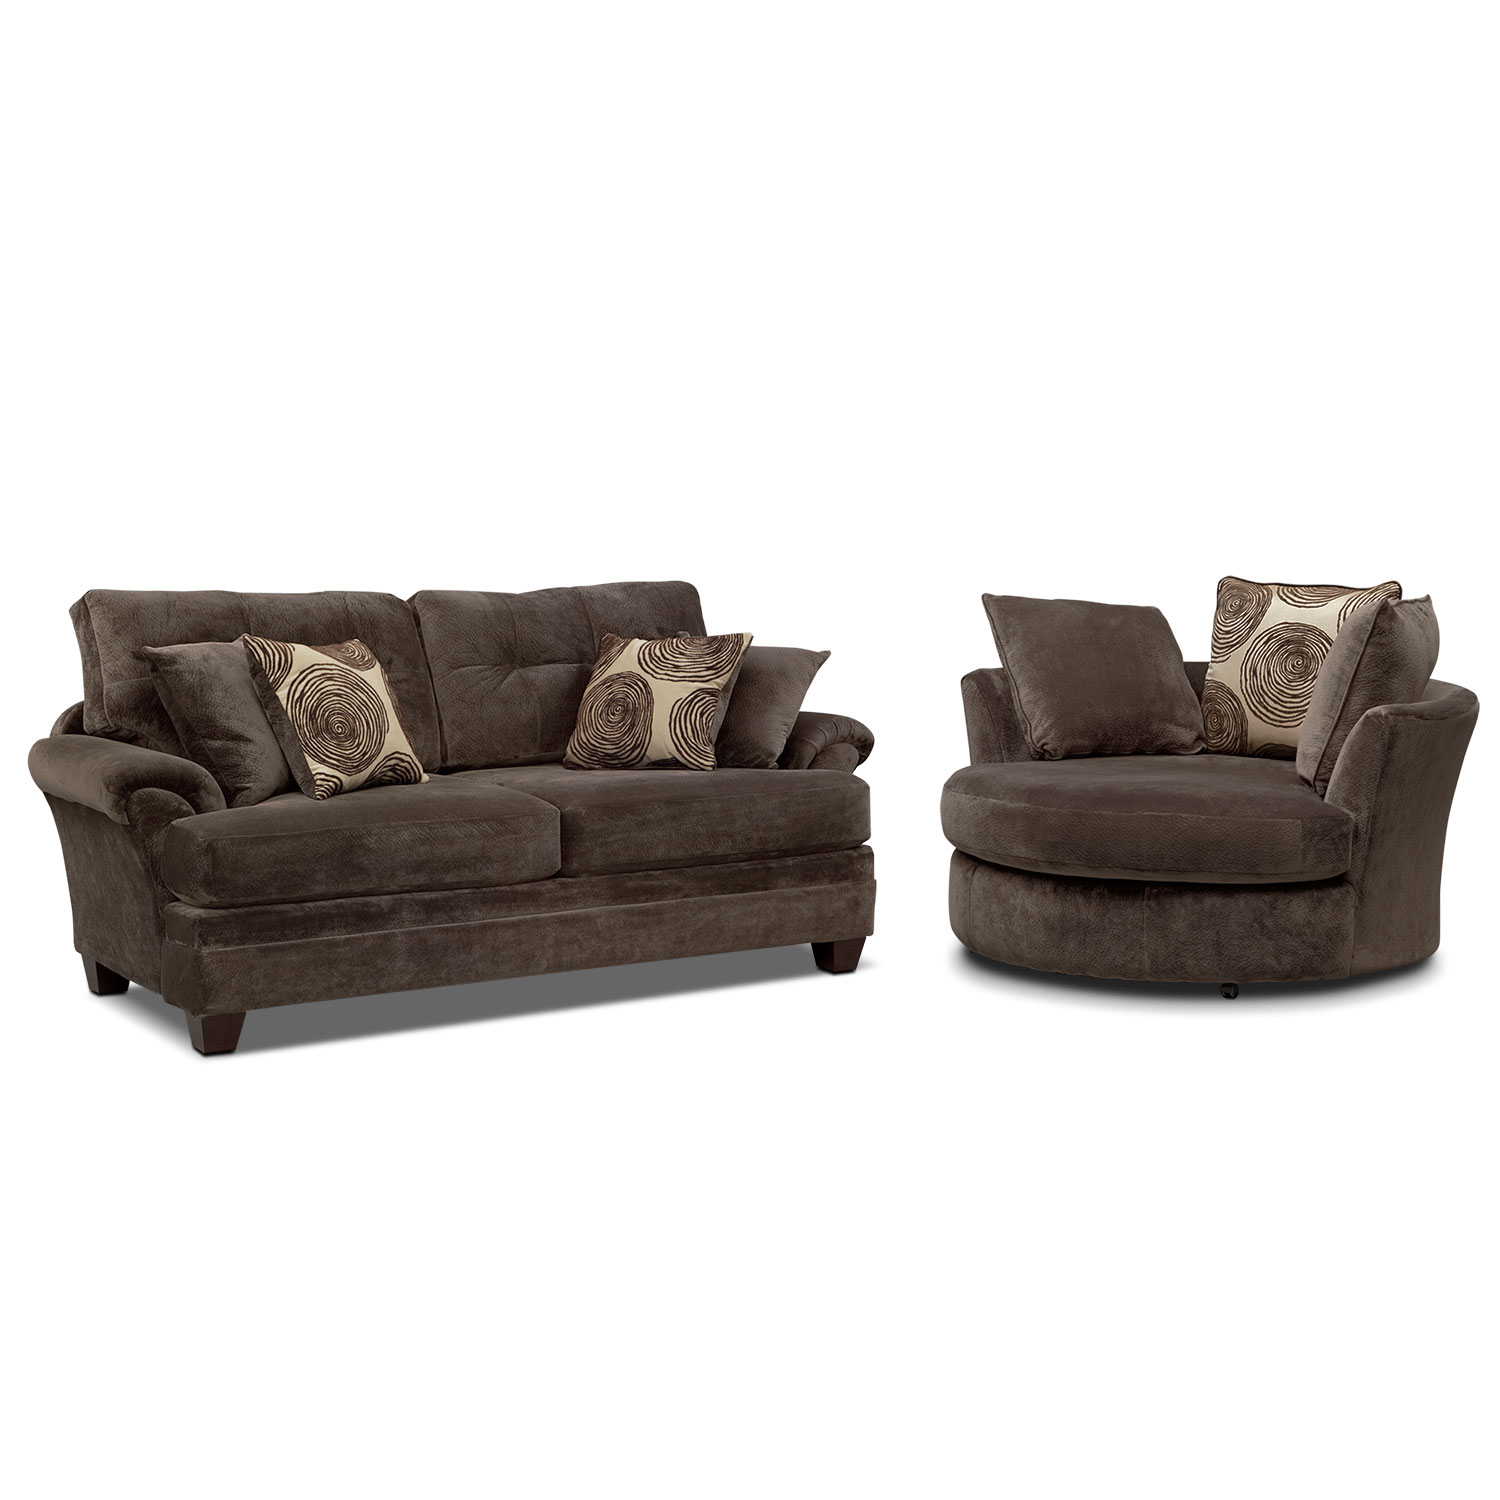 Cordelle Sofa And Swivel Chair Set | Value City Furniture And Mattresses Regarding Chocolate Brown Leather Tufted Swivel Chairs (View 17 of 25)